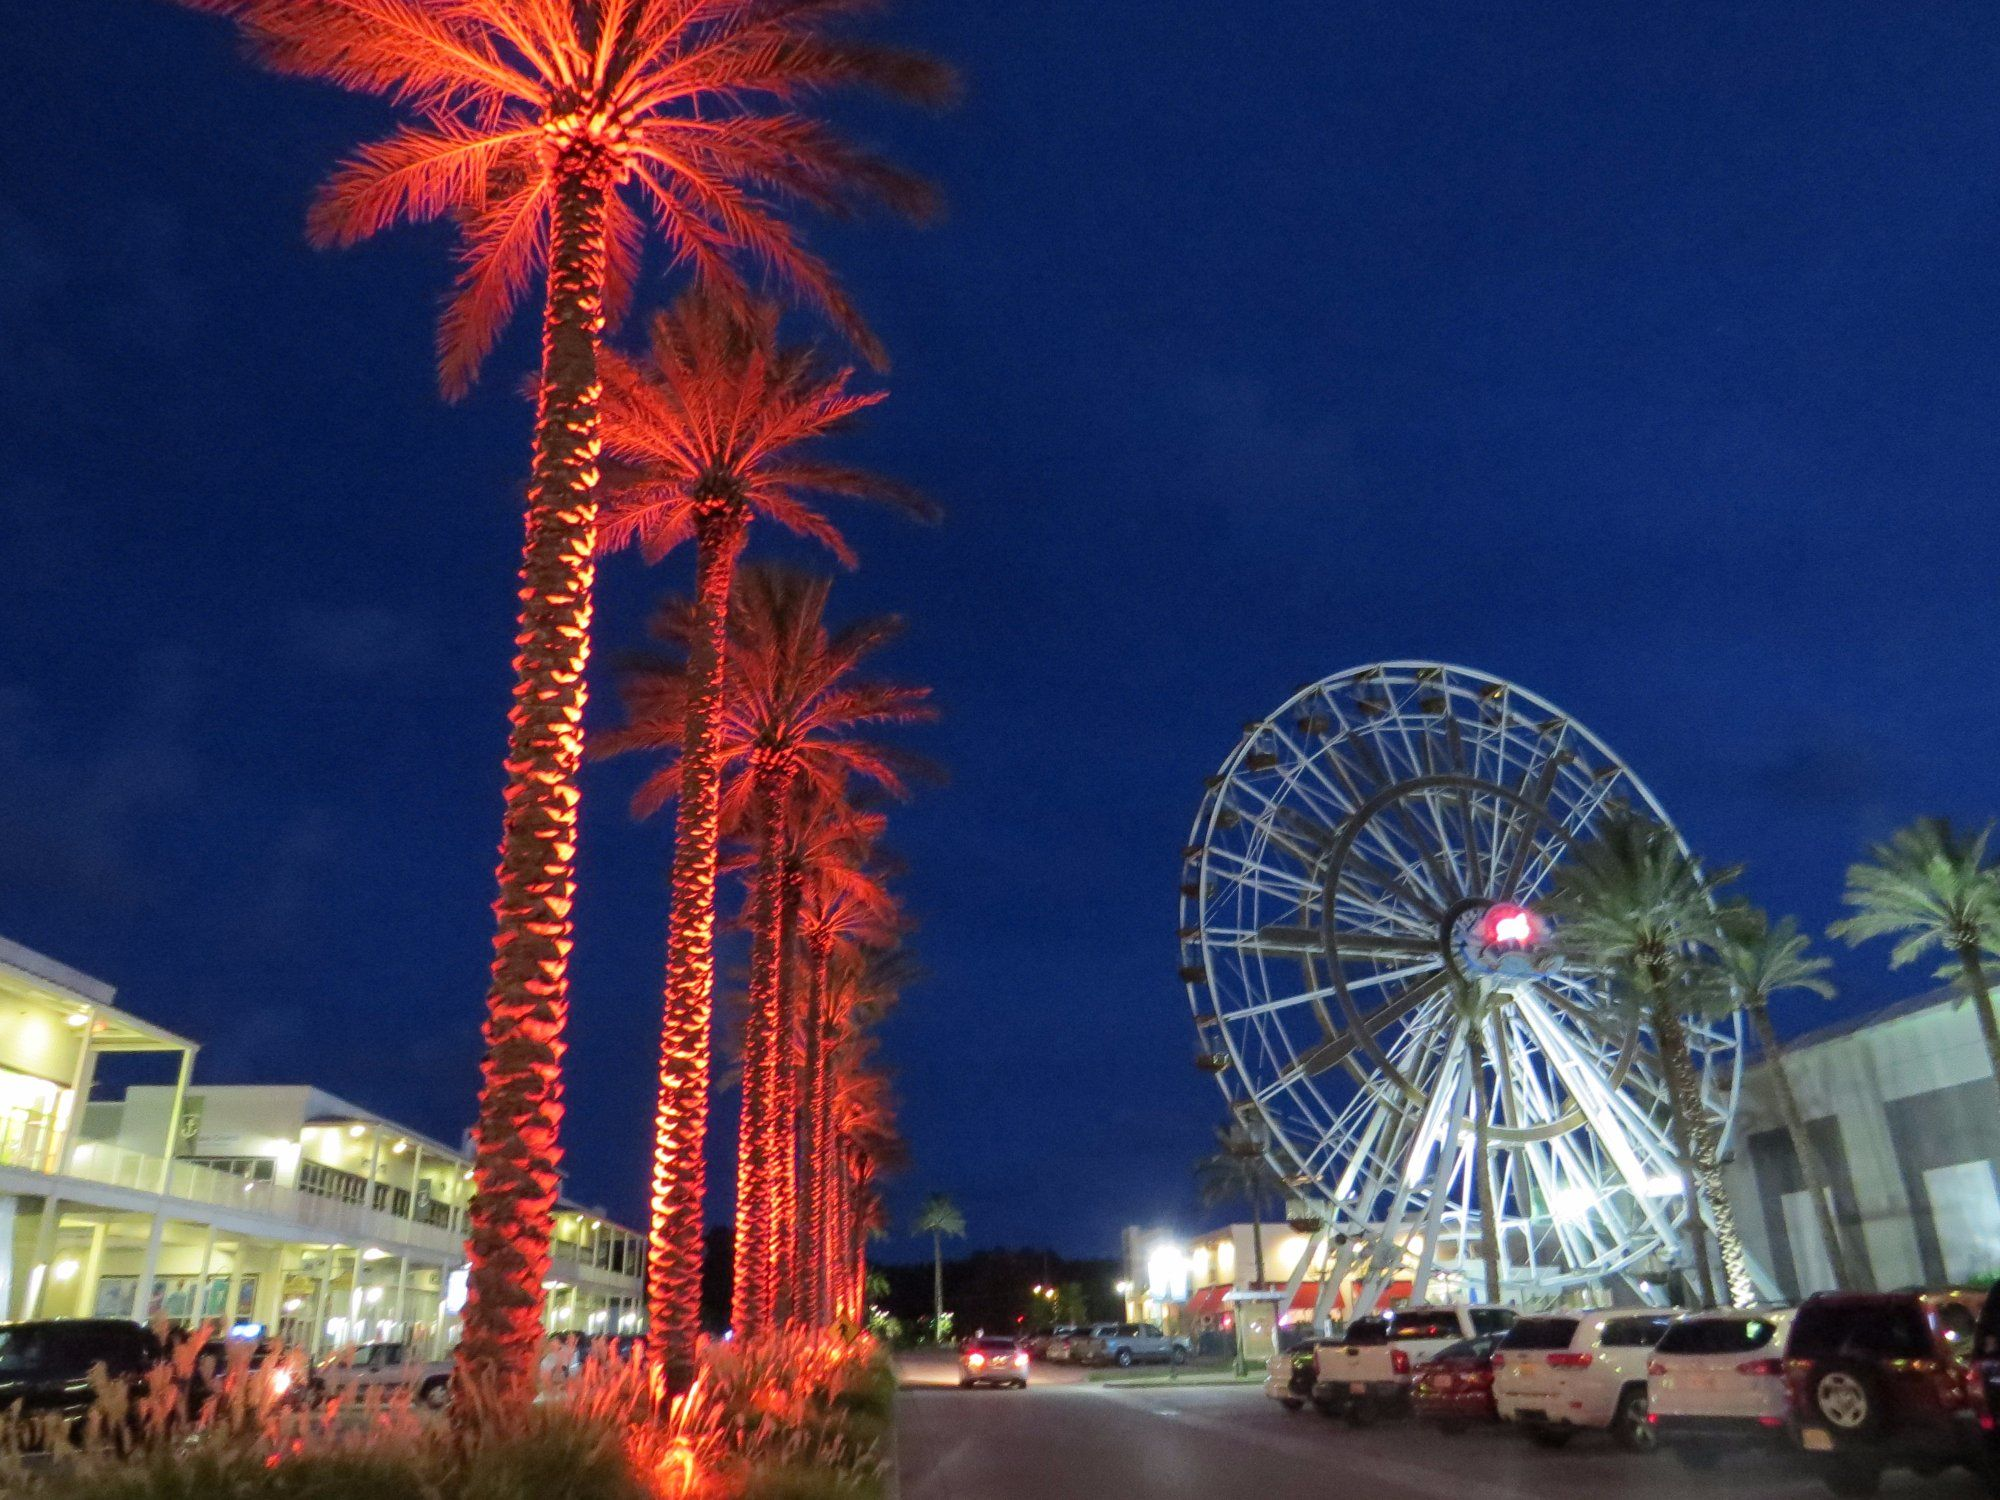 The Wharf Orange Beach See 797 Reviews Articles And 180 Photos Of